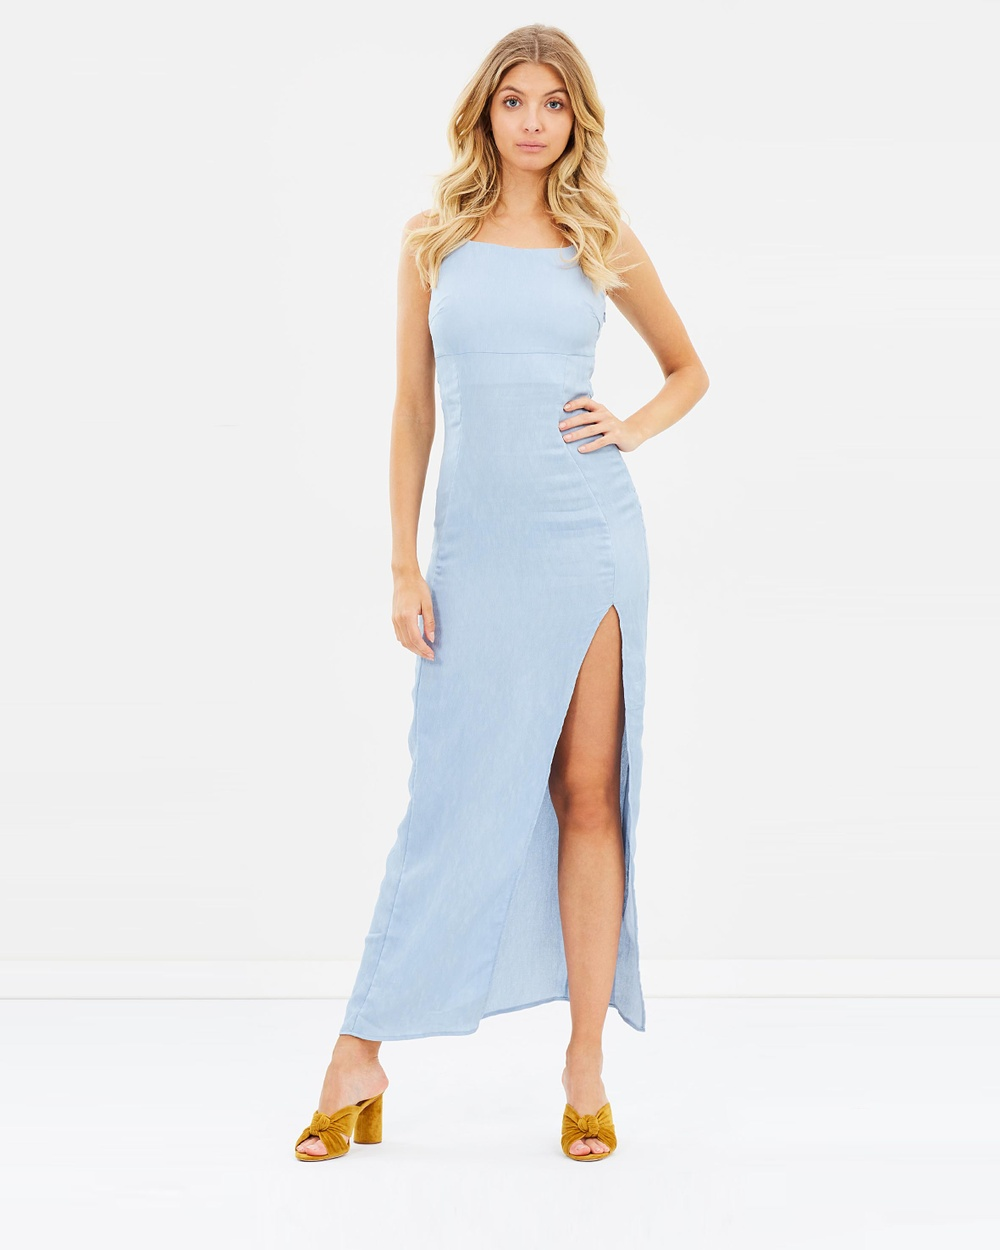 Atmos & Here ICONIC EXCLUSIVE Juliette Maxi Dress Dresses Dusty Blue ICONIC EXCLUSIVE Juliette Maxi Dress